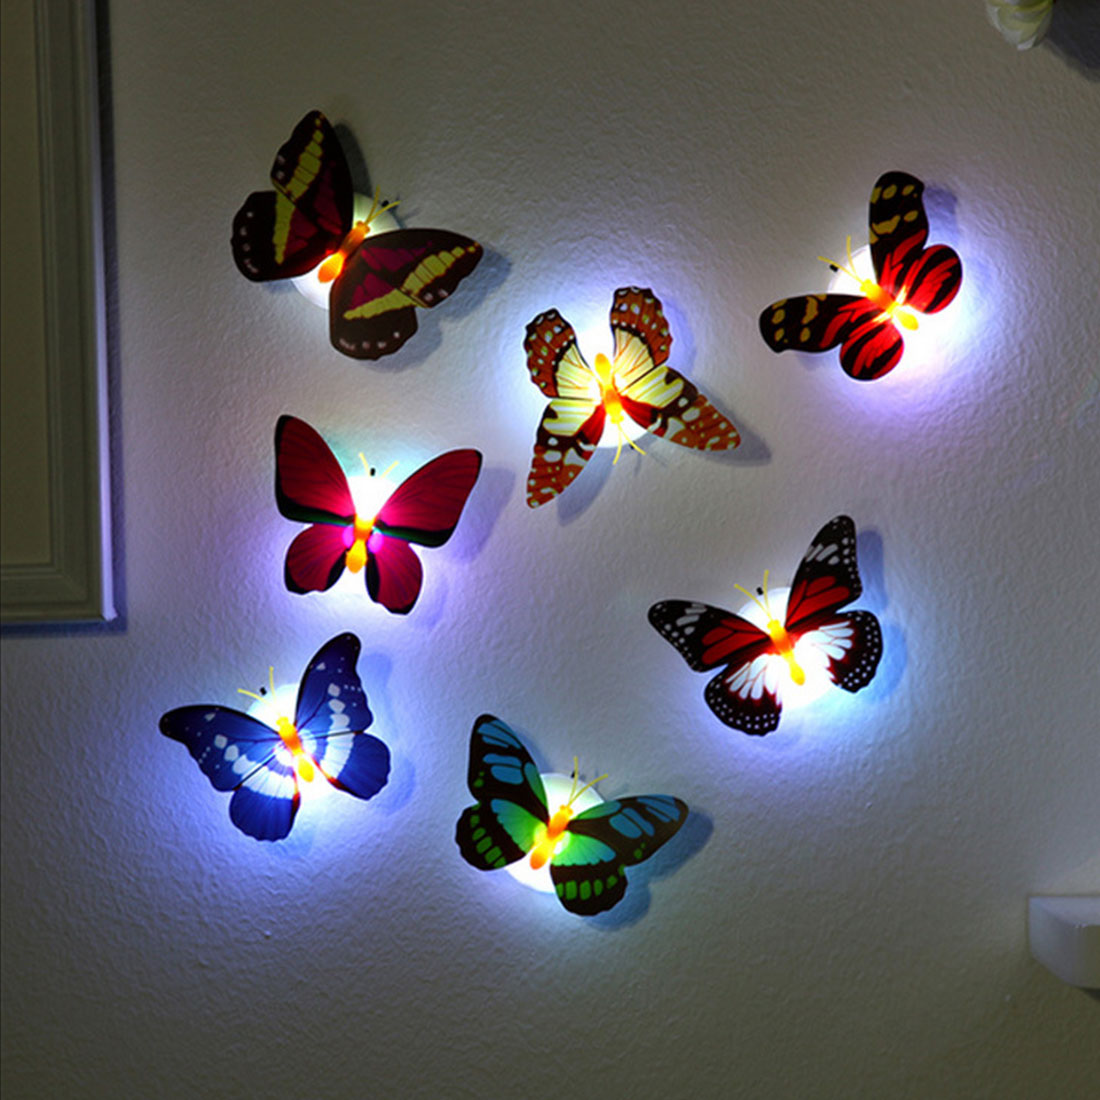 LED Light Night Atmosphere Lamp with Colorful Changing Butterfly Indoor Light with Suction Pad  Home Party Desk Wall Decor novelty 3d full moon lamp led night light usb rechargeable color changing desk table light home decor 8 10 12 15 18 20cm